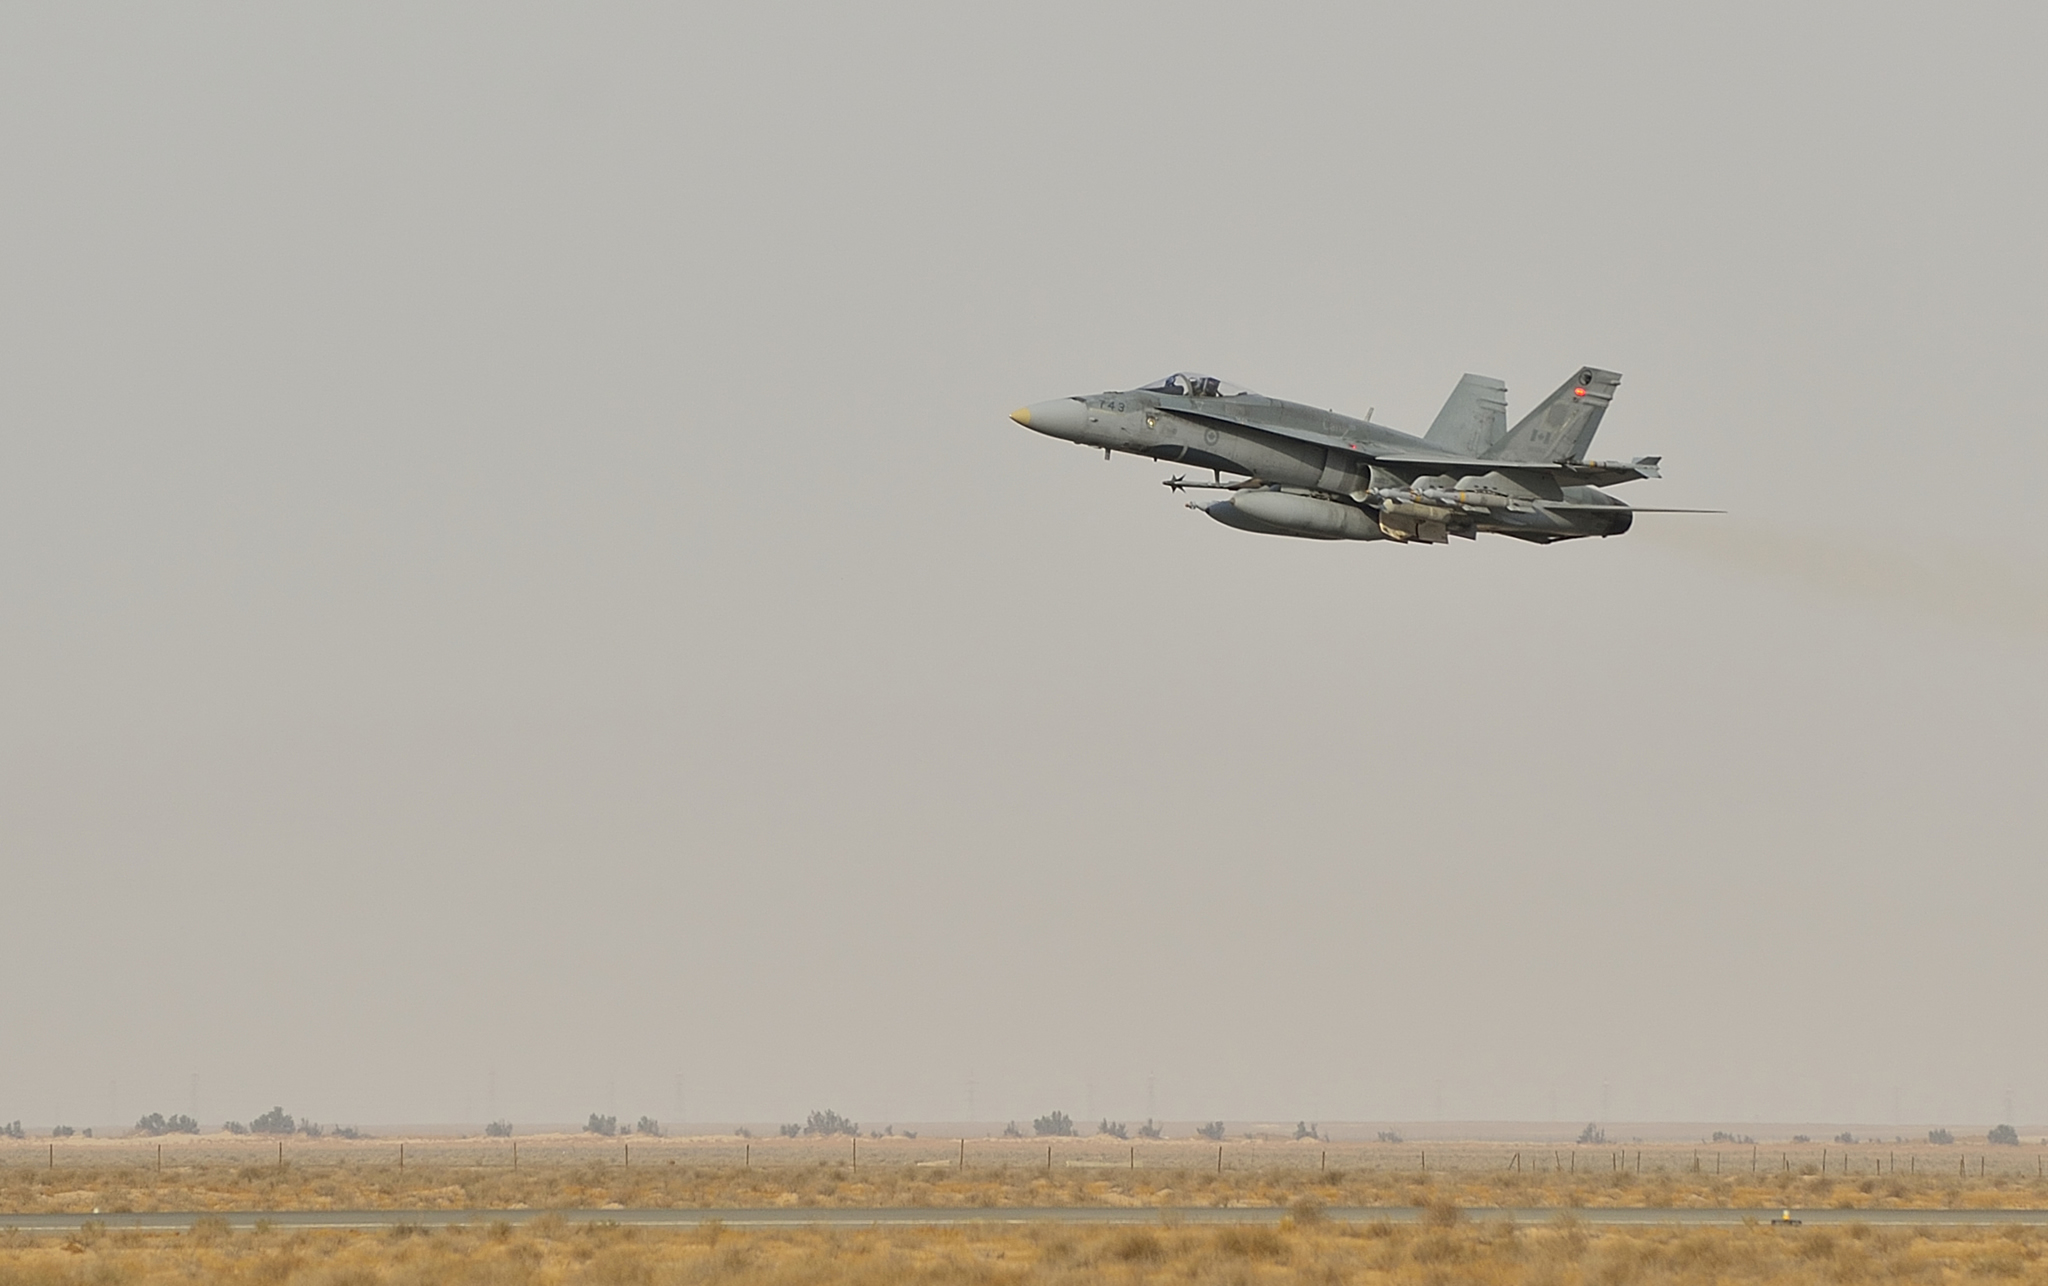 30 October 2014 Kuwait A Canadian Armed Forces Cf 188 Fighter Jet Takes